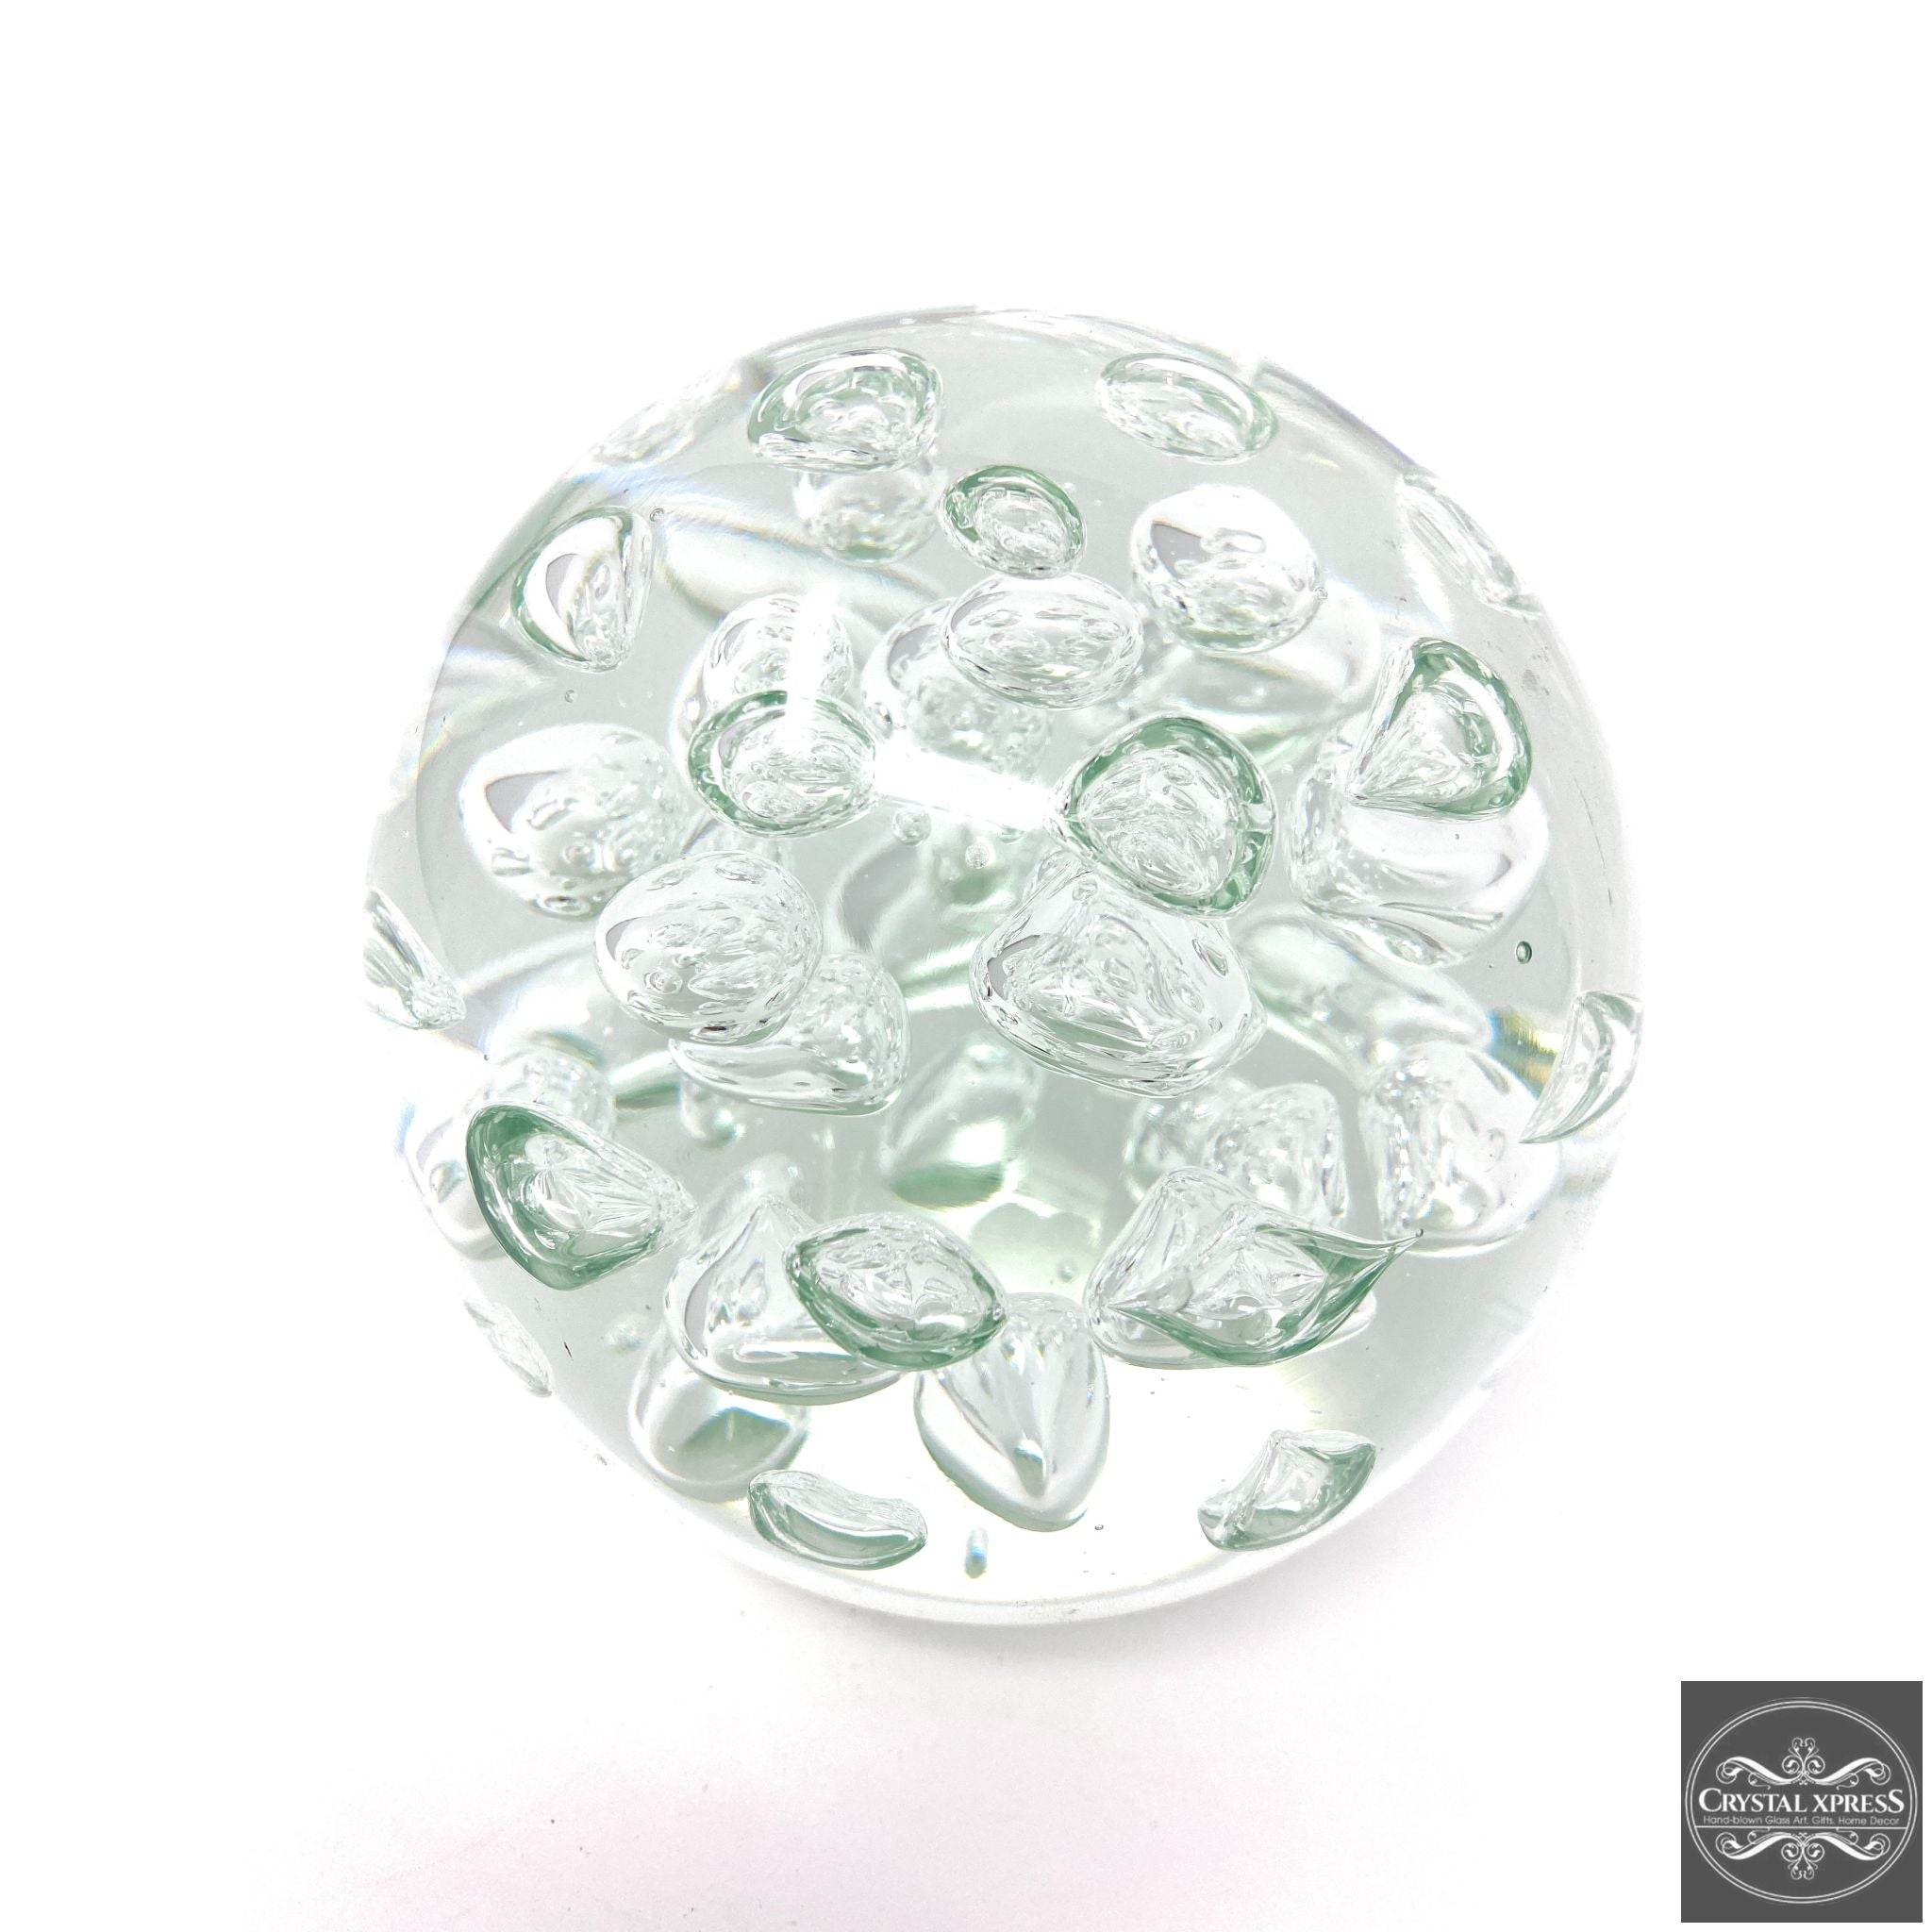 Clear White Glass Paperweight 4.5 inch